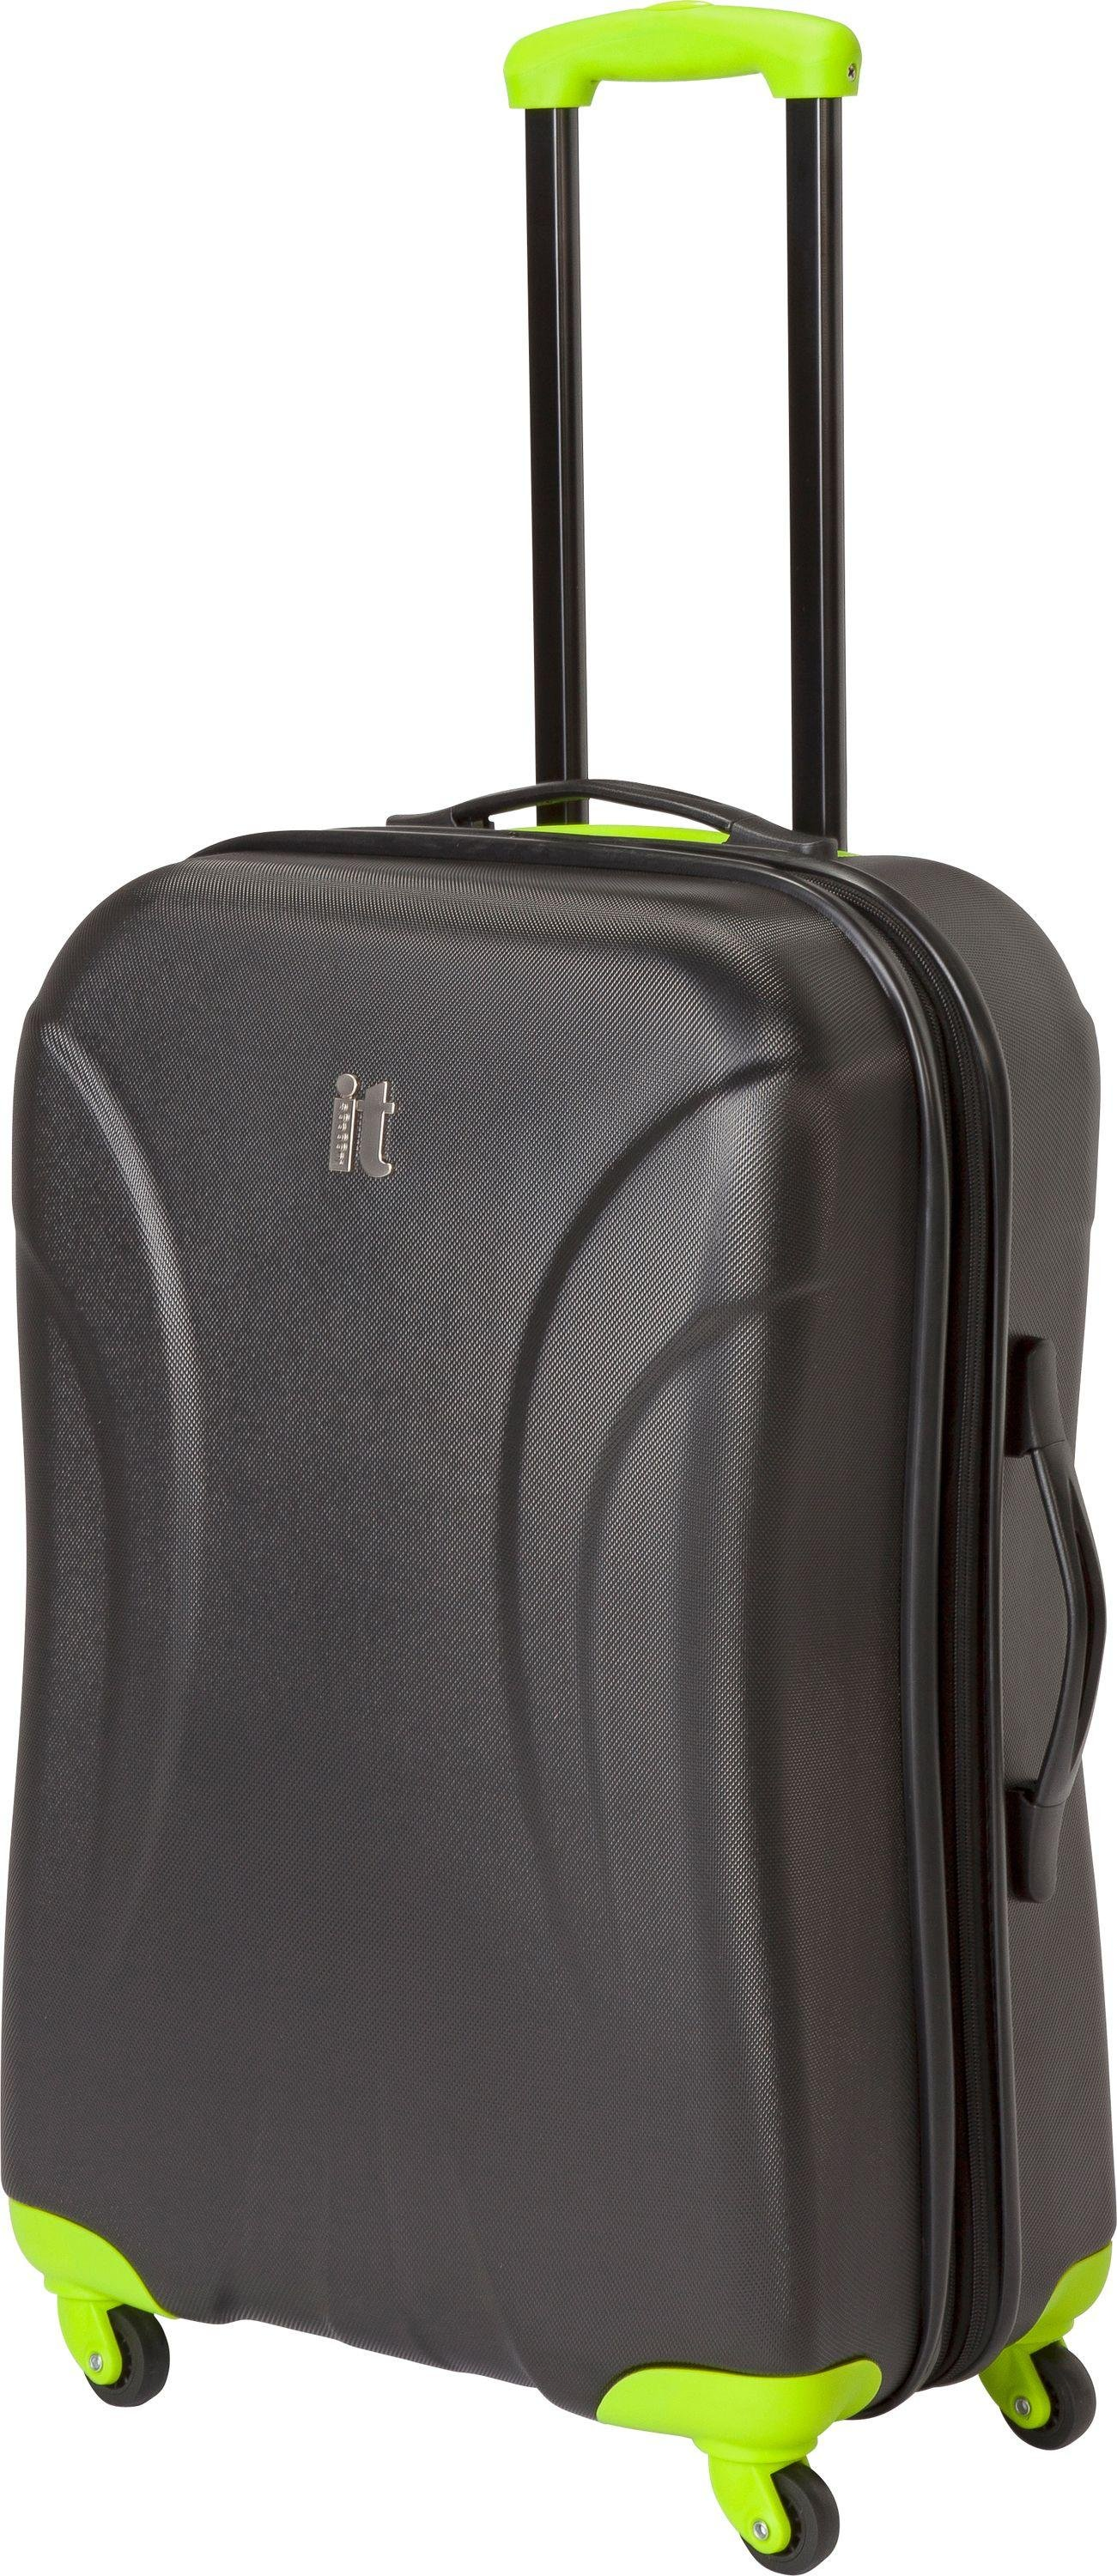 IT Luggage Small Expandable 4 Wheel Hard Case - Black lowest price